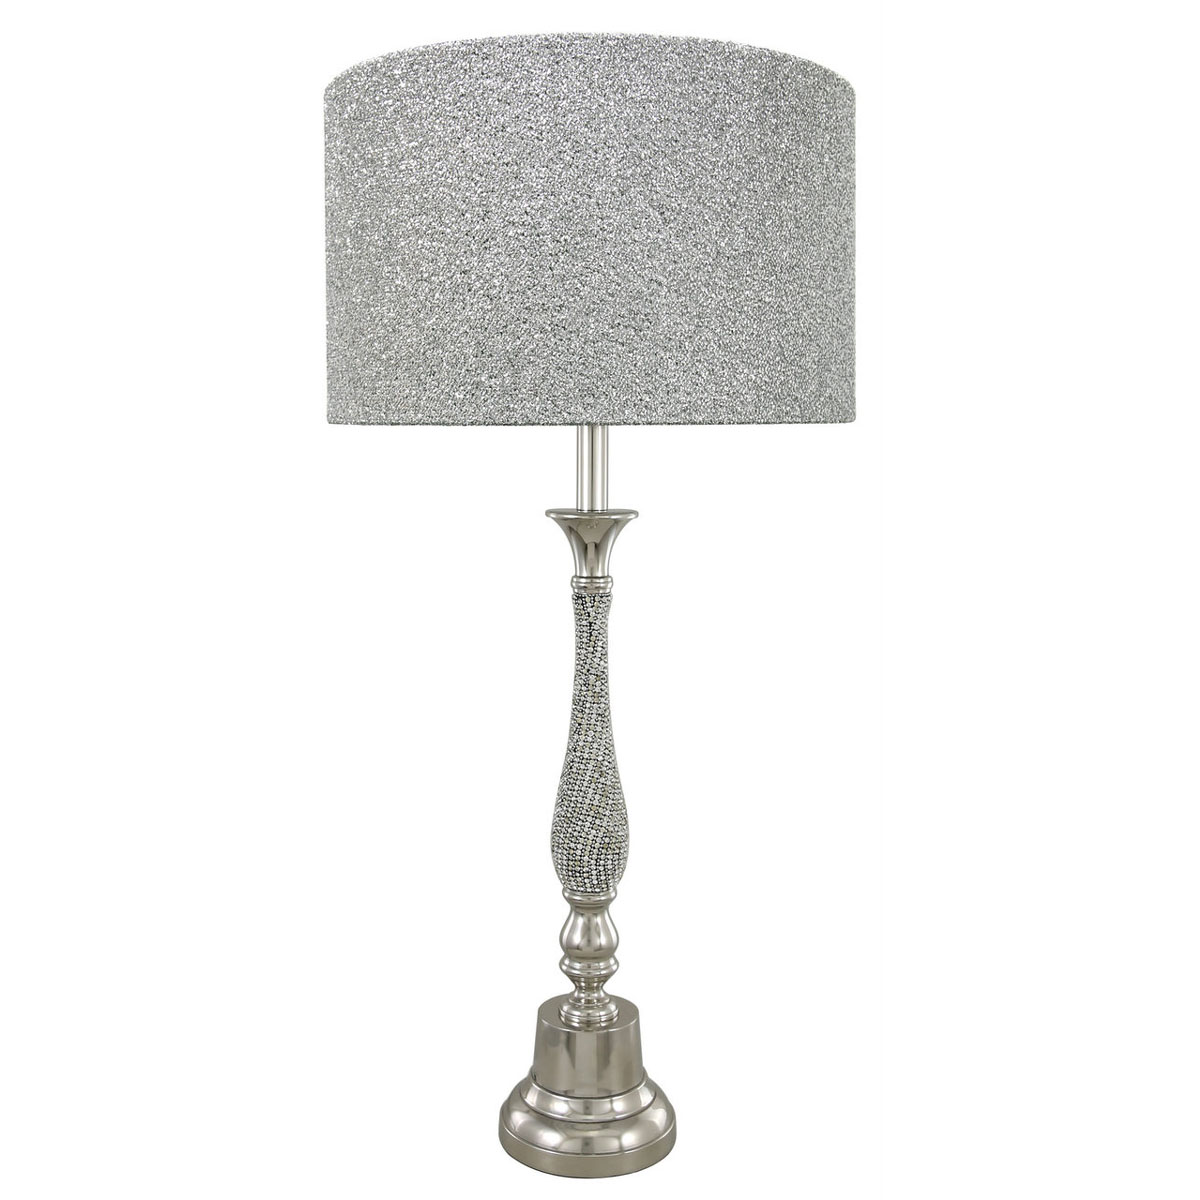 Floor Lamp With 48cm Glitter Drum Shade